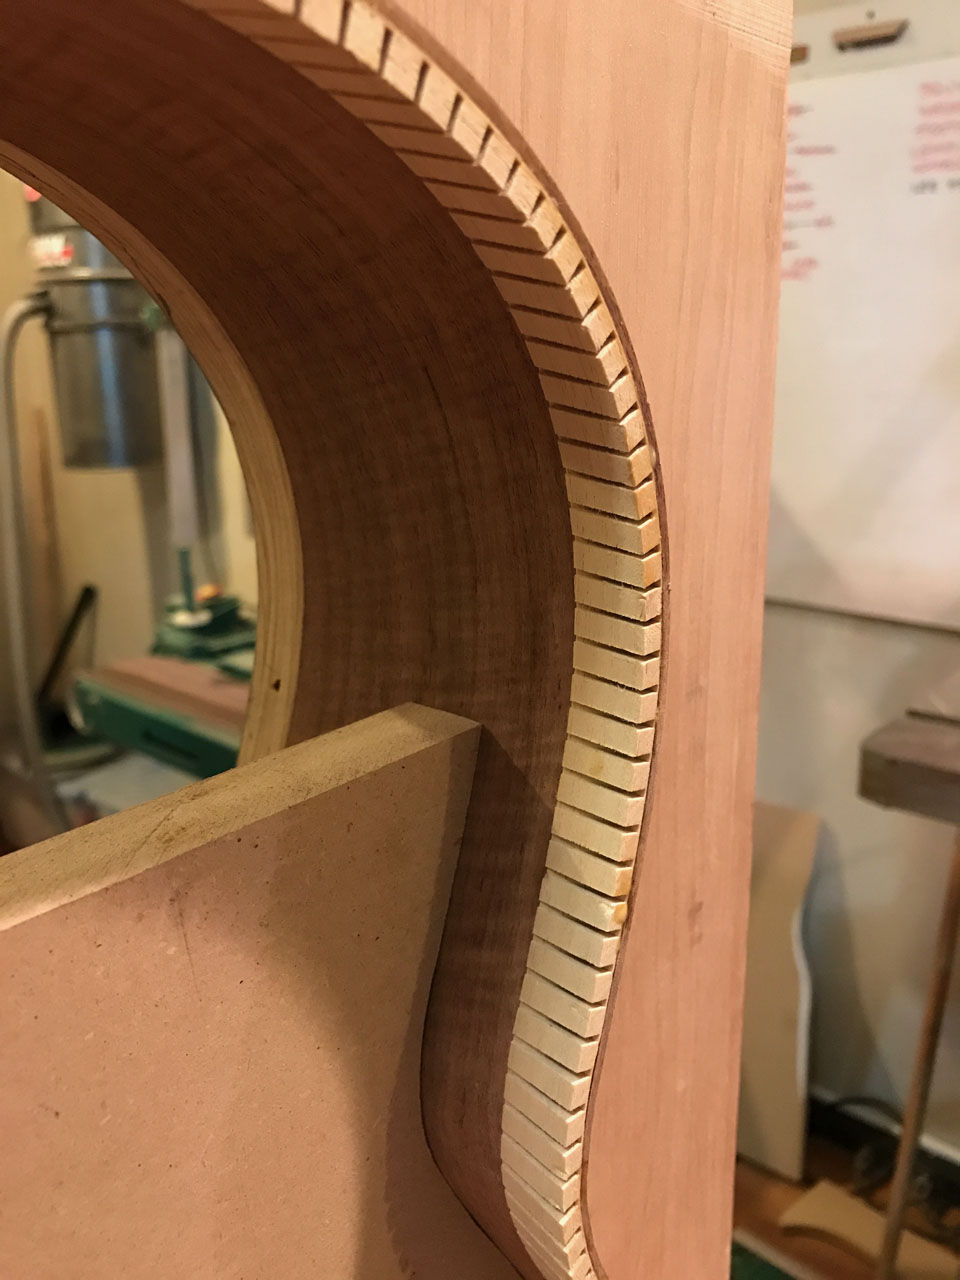 THE CLASSICAL BODY IN CLOSEUP. THE LININGS HAVE BEEN GLUED INTO PLACE, AND NOW THE SIDES ARE SANDED LEVEL WITH THE LININGS.